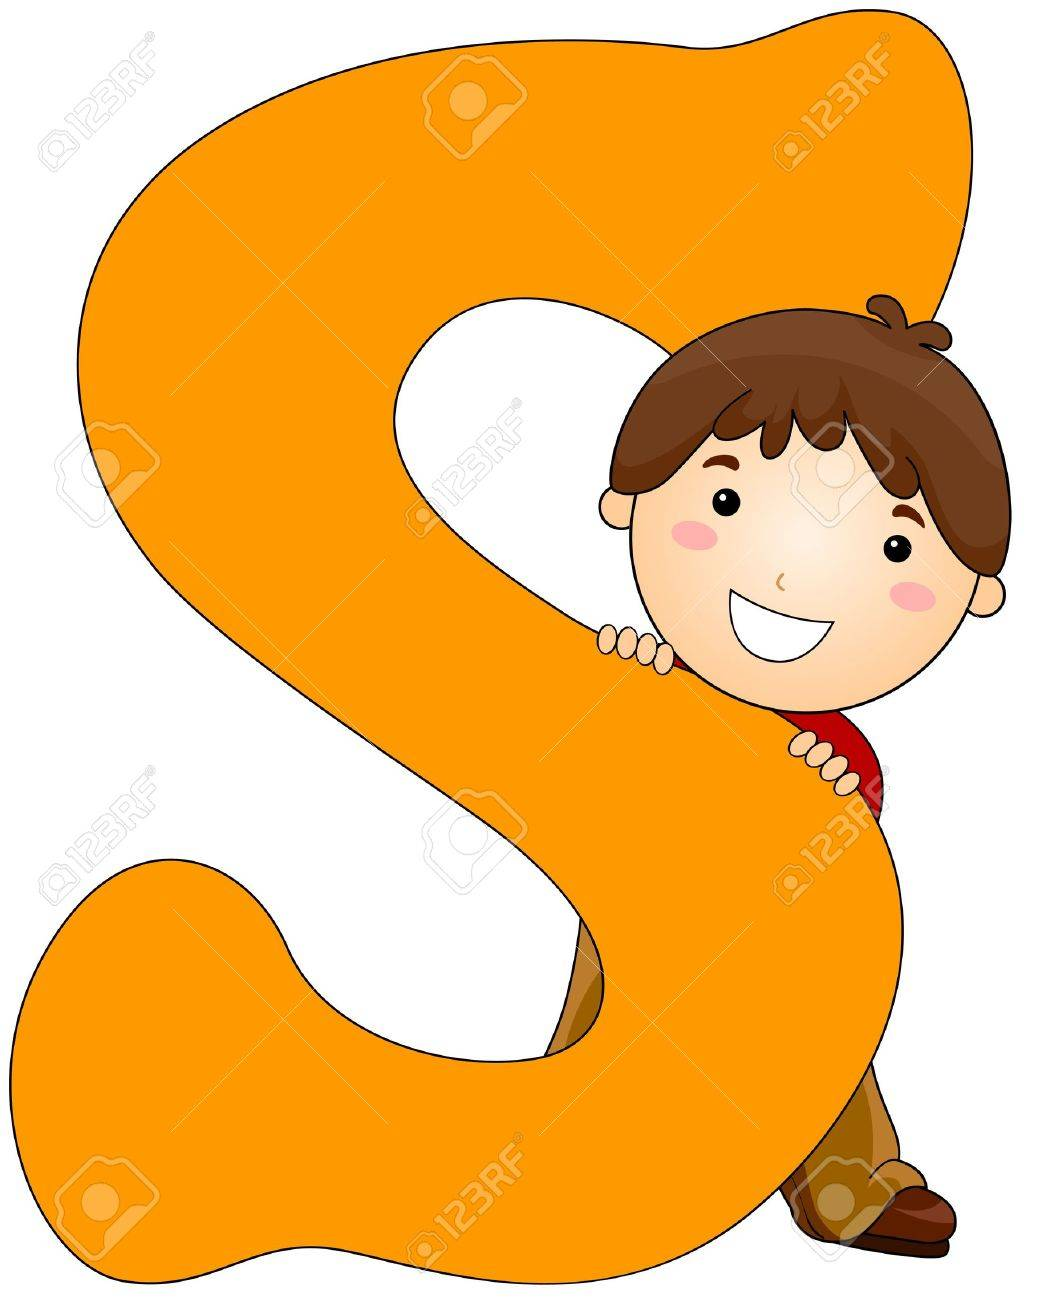 Illustration of a Little Boy Hiding Behind a Letter S Stock Photo - 8427119